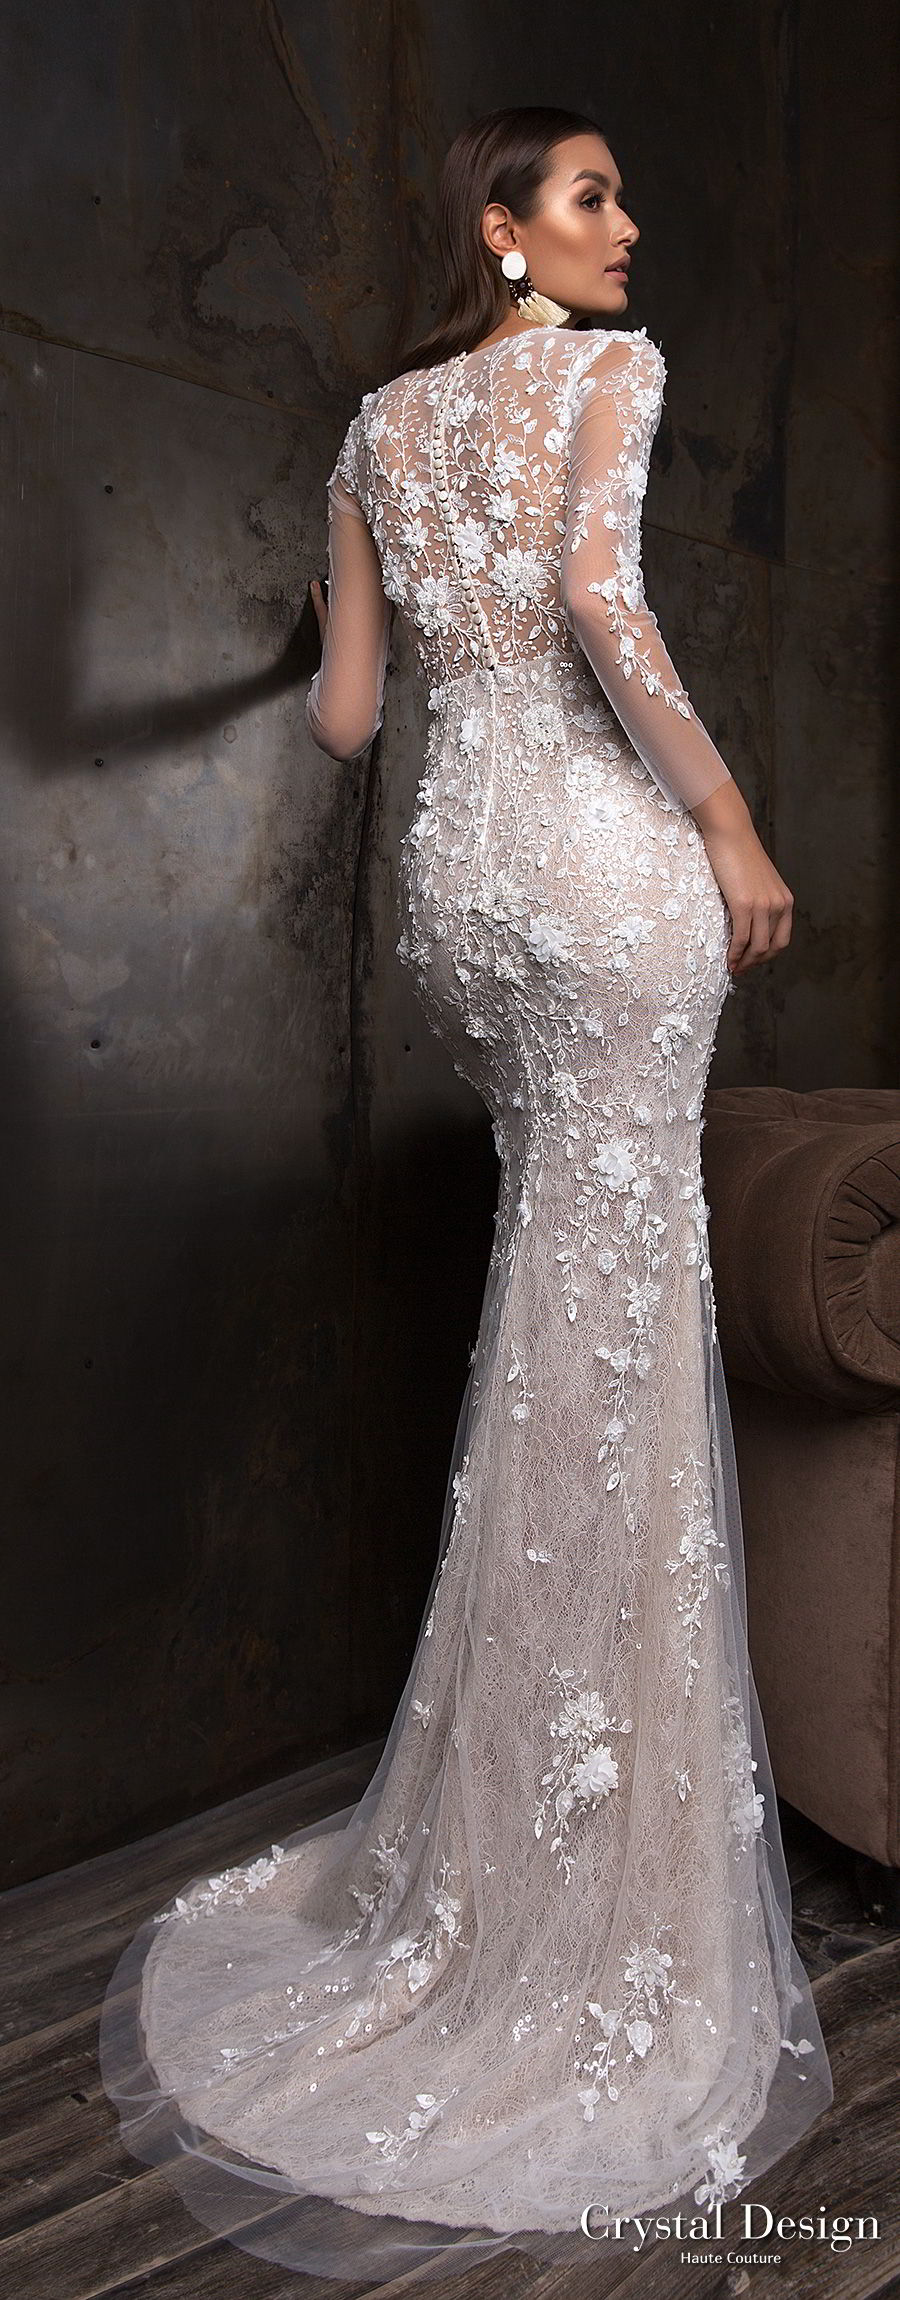 crystal design 2018 long sleeves deep plunging v neck full embellishment sexy romantic sheath wedding dress a line overskirt lace back sweep train (deli) bv